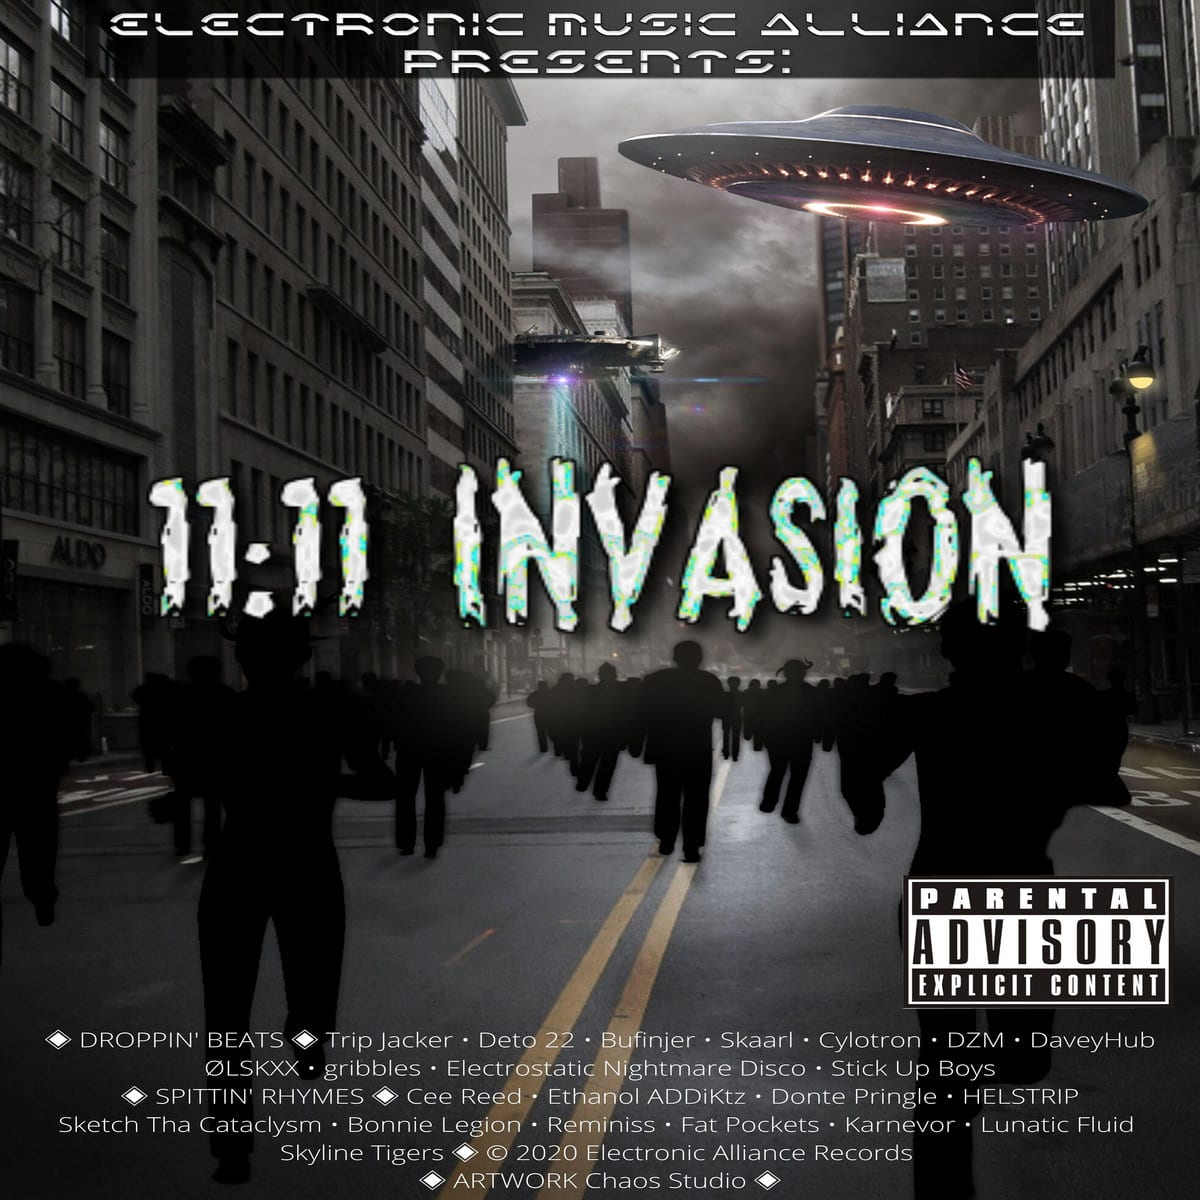 11:11 Invasion Album Serves Up a Serious Feast Of Styles and Sounds